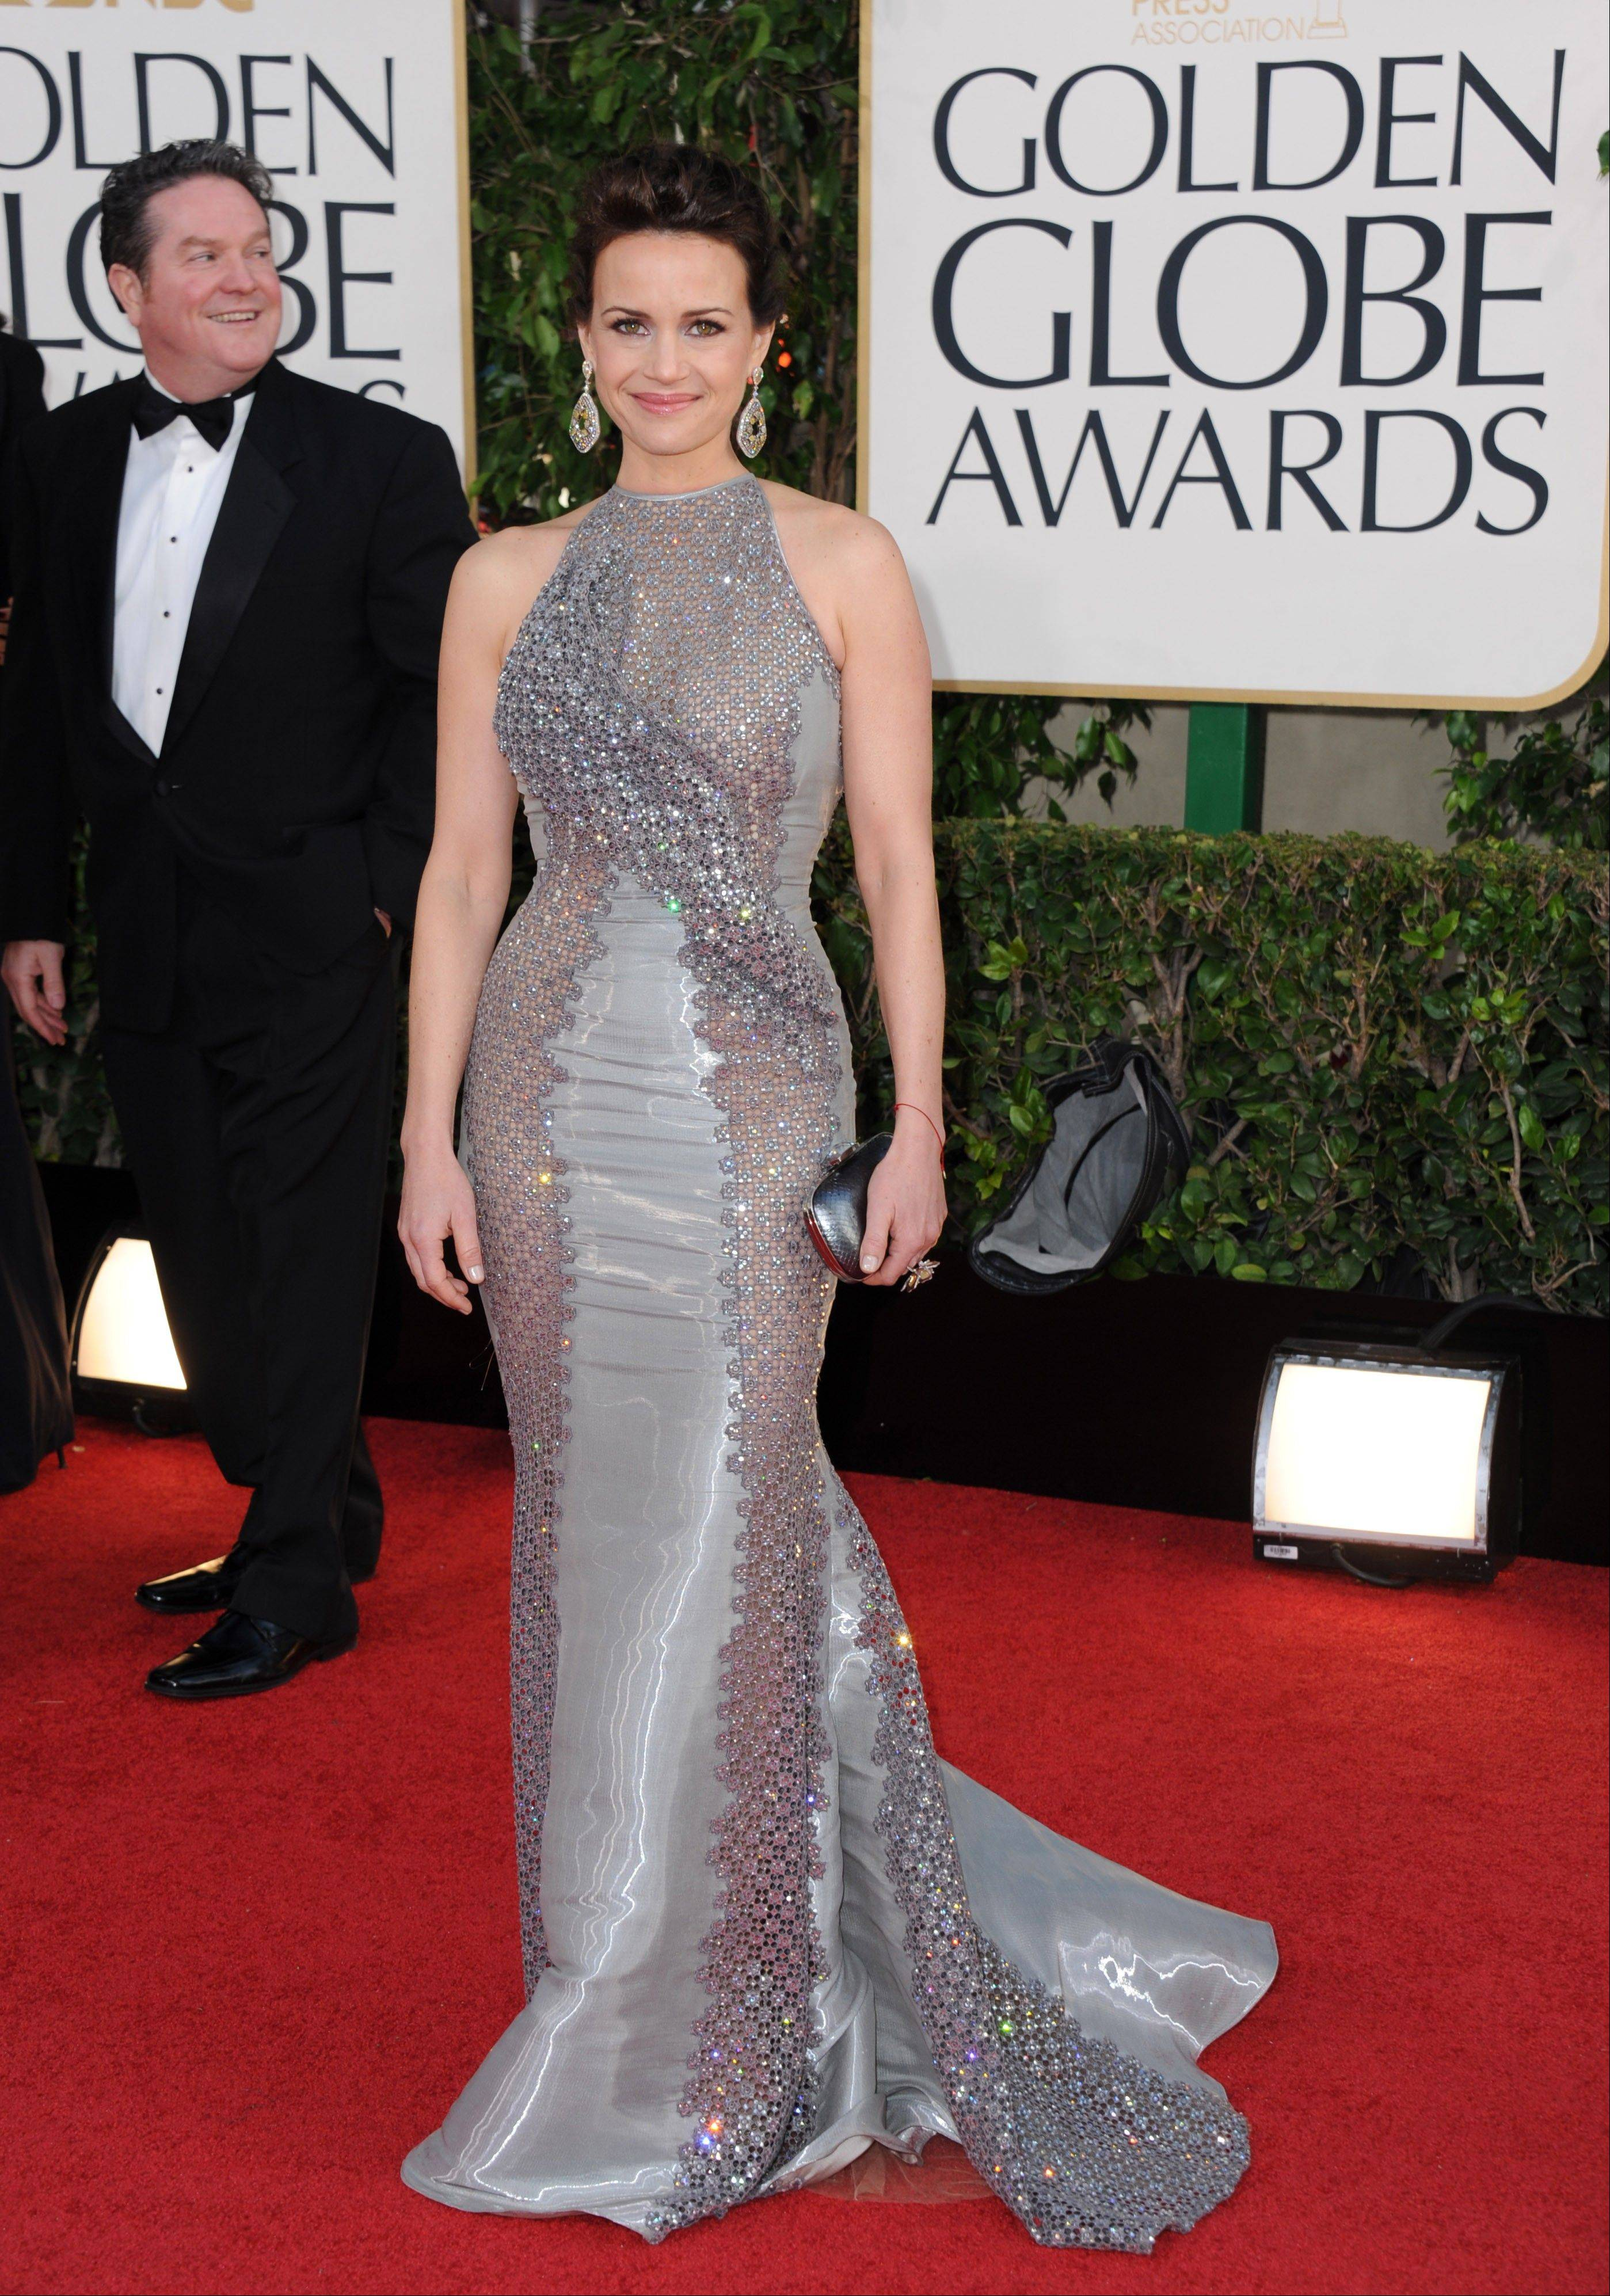 Actress Carla Gugino arrives at the 70th Annual Golden Globe Awards at the Beverly Hilton Hotel on Sunday Jan. 13, 2013, in Beverly Hills, Calif.